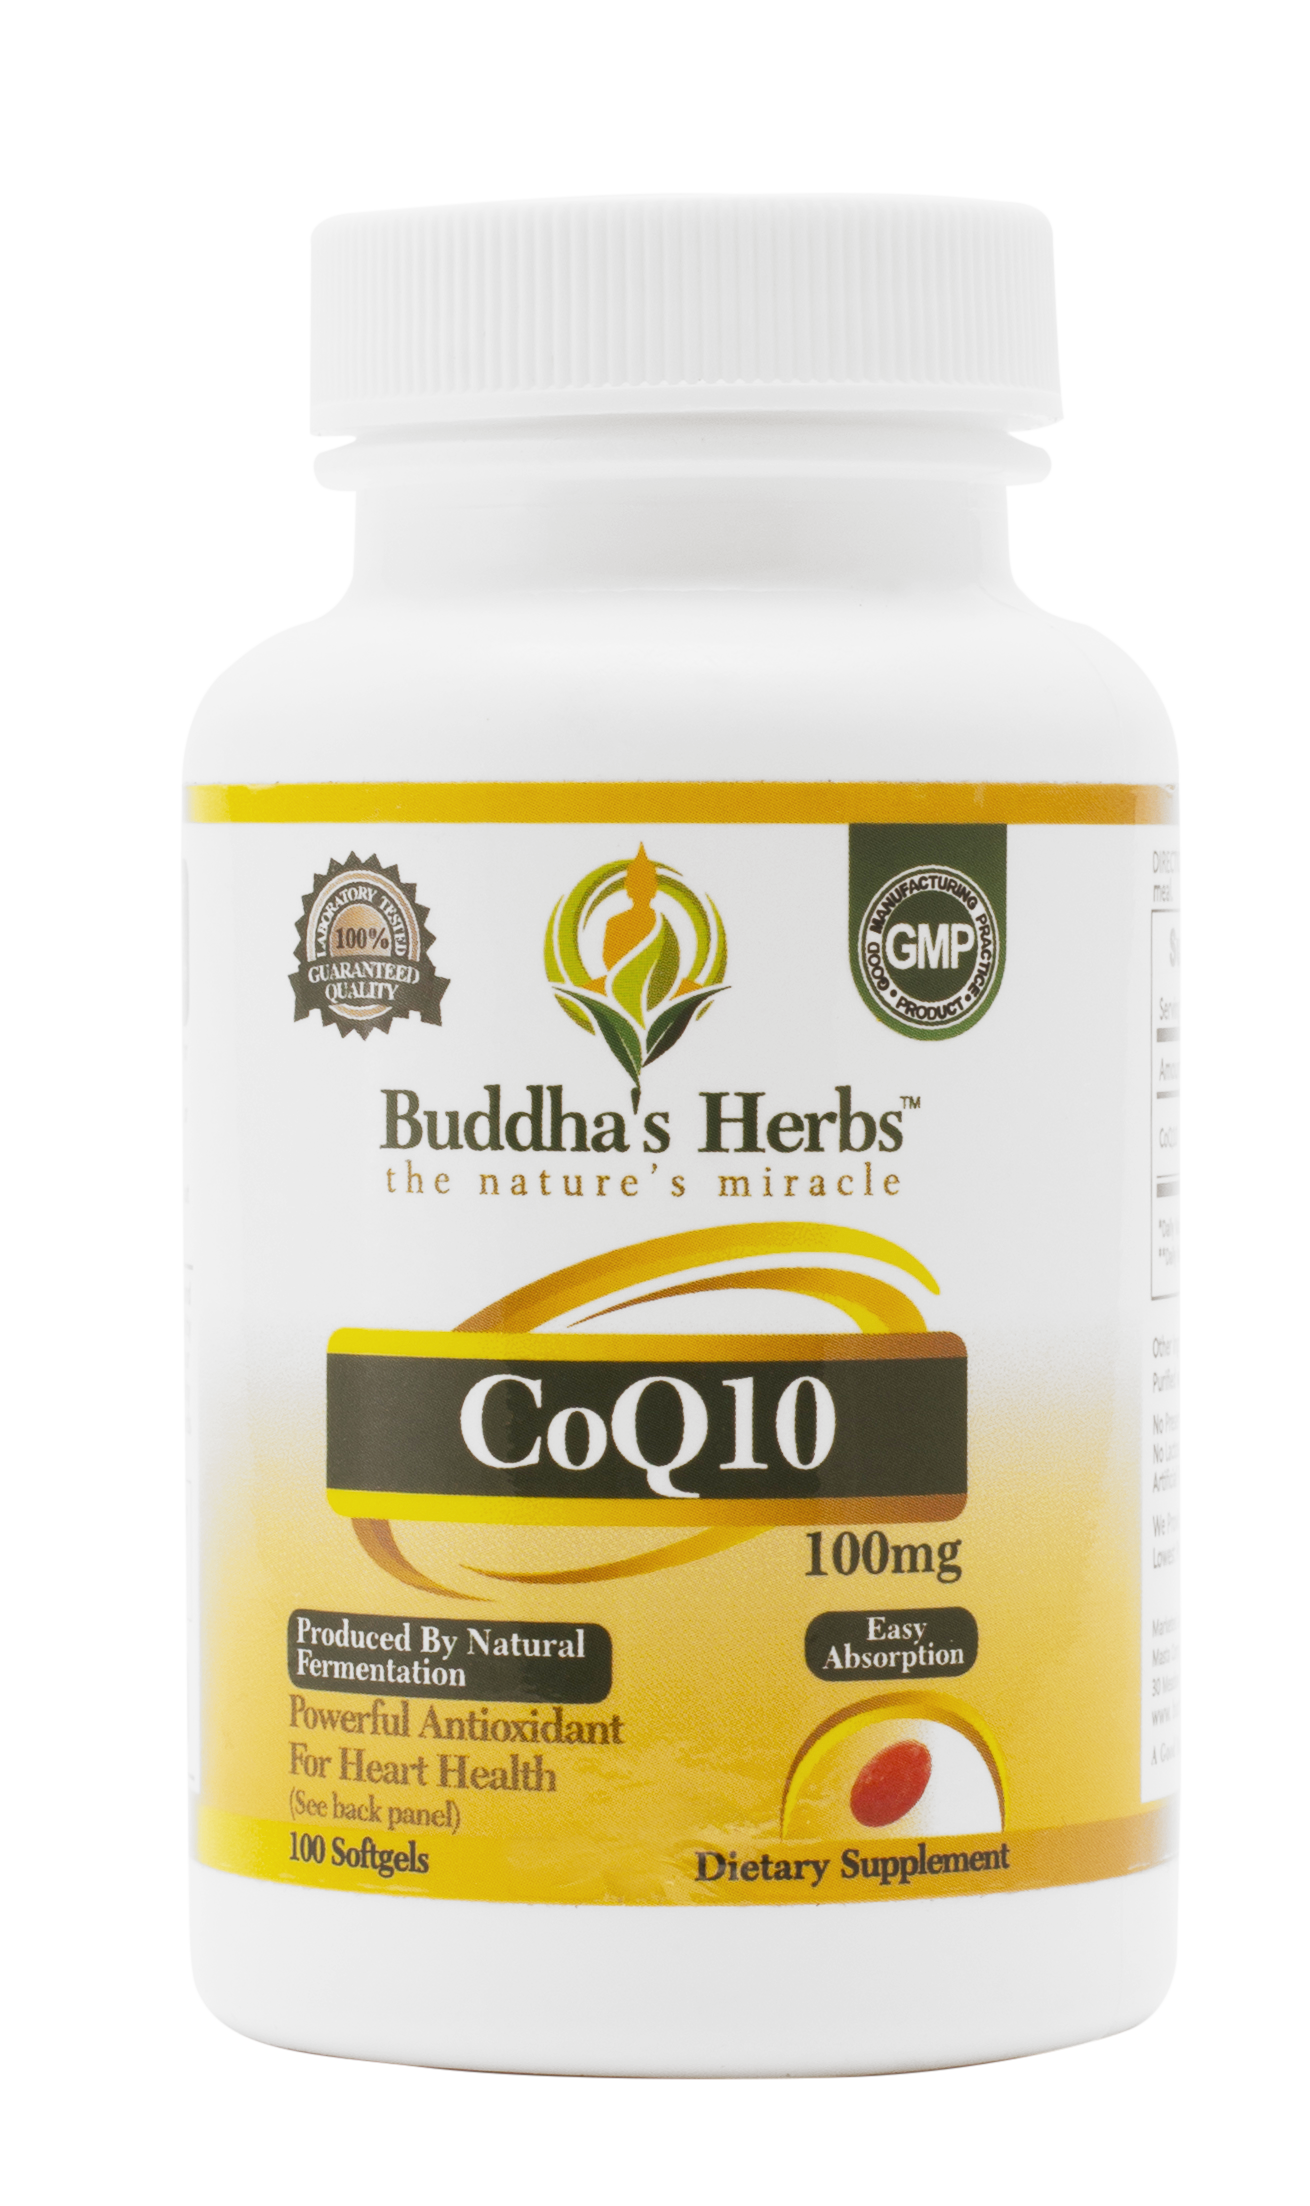 Buy Buddha's Herbs High Absorb CoQ10-100 mg, 100c-CONSUMER LAB Certified, online and  get free shipping on orders above $20. Buy now and SAVE BIG.